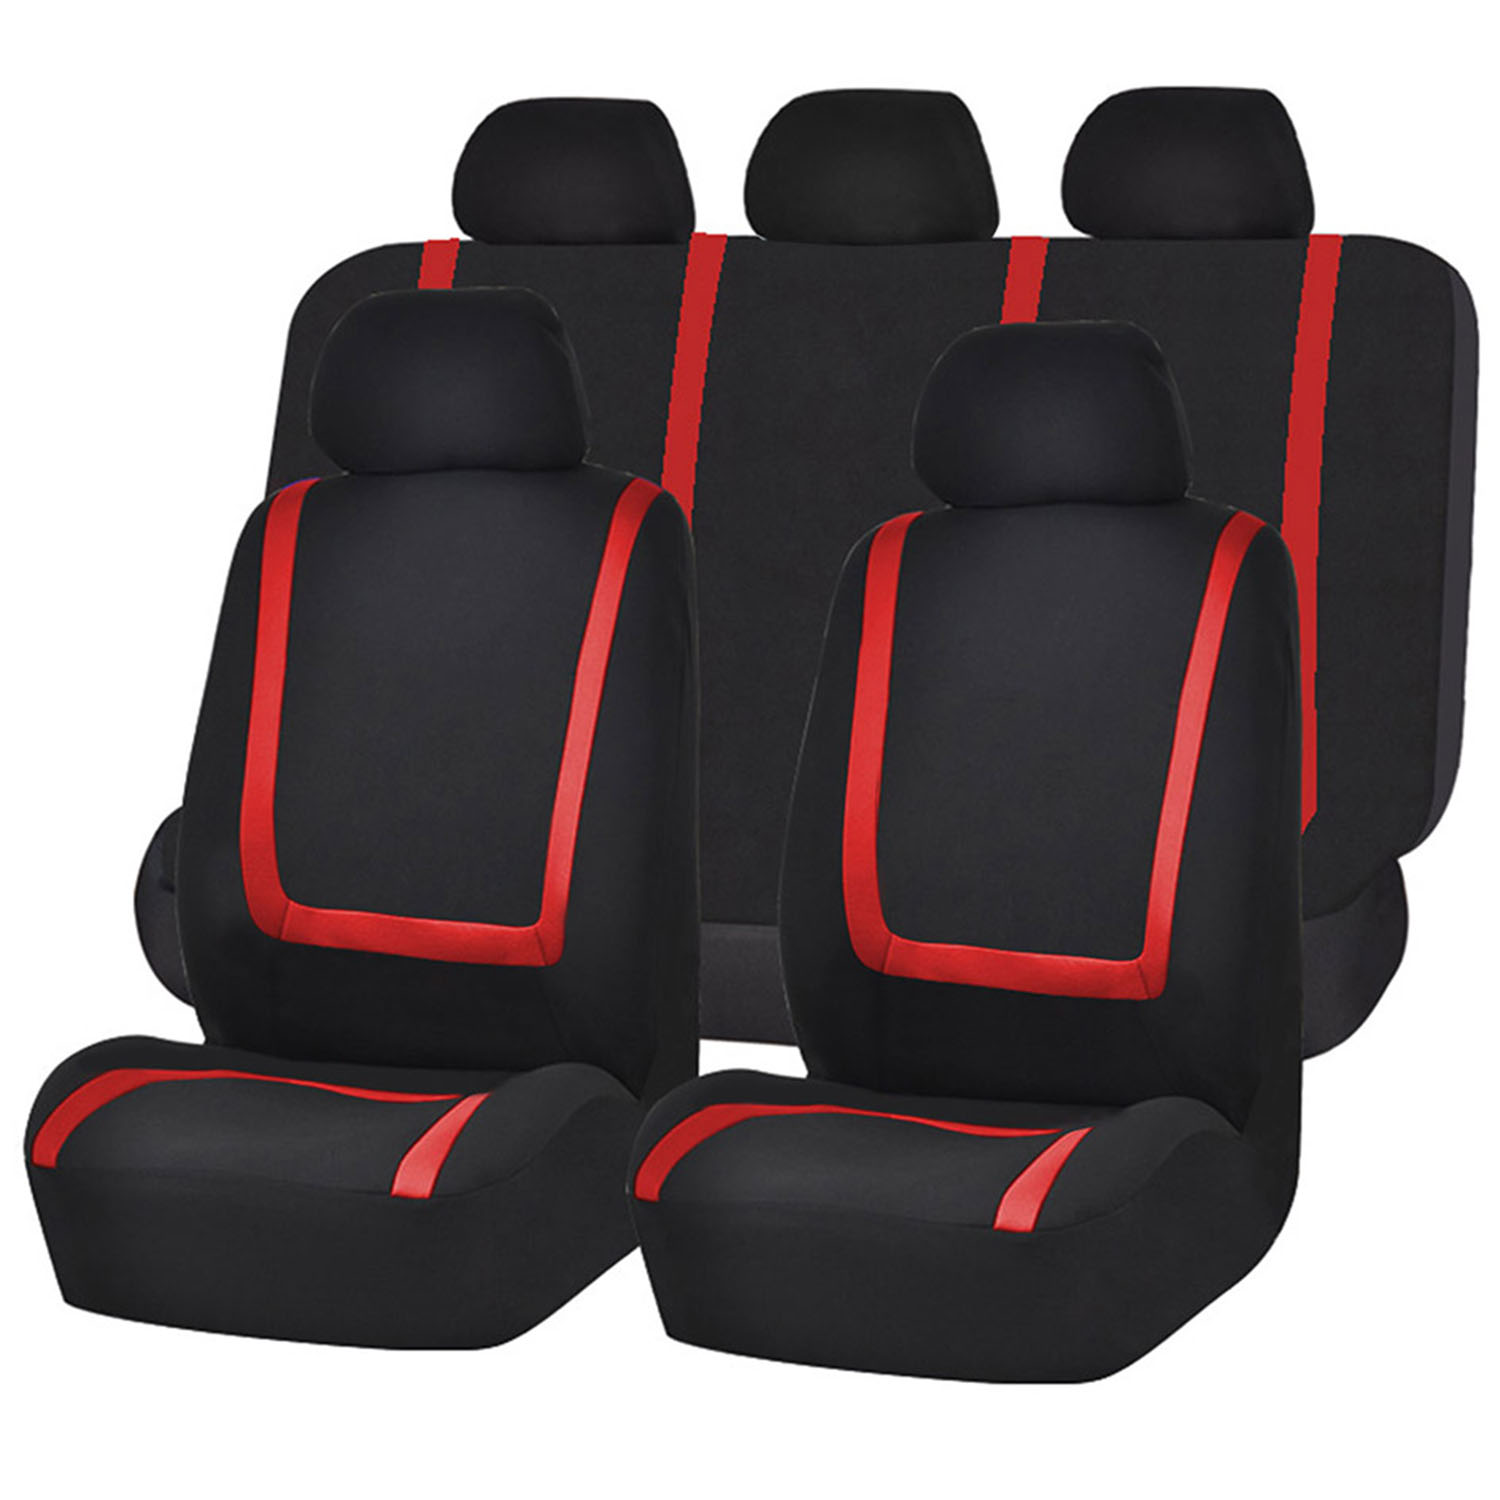 9Pcs Auto Seat Cover Set Front Seat Back Bench Rear Backrest Covers Universal Fits Cars SUV Trucks